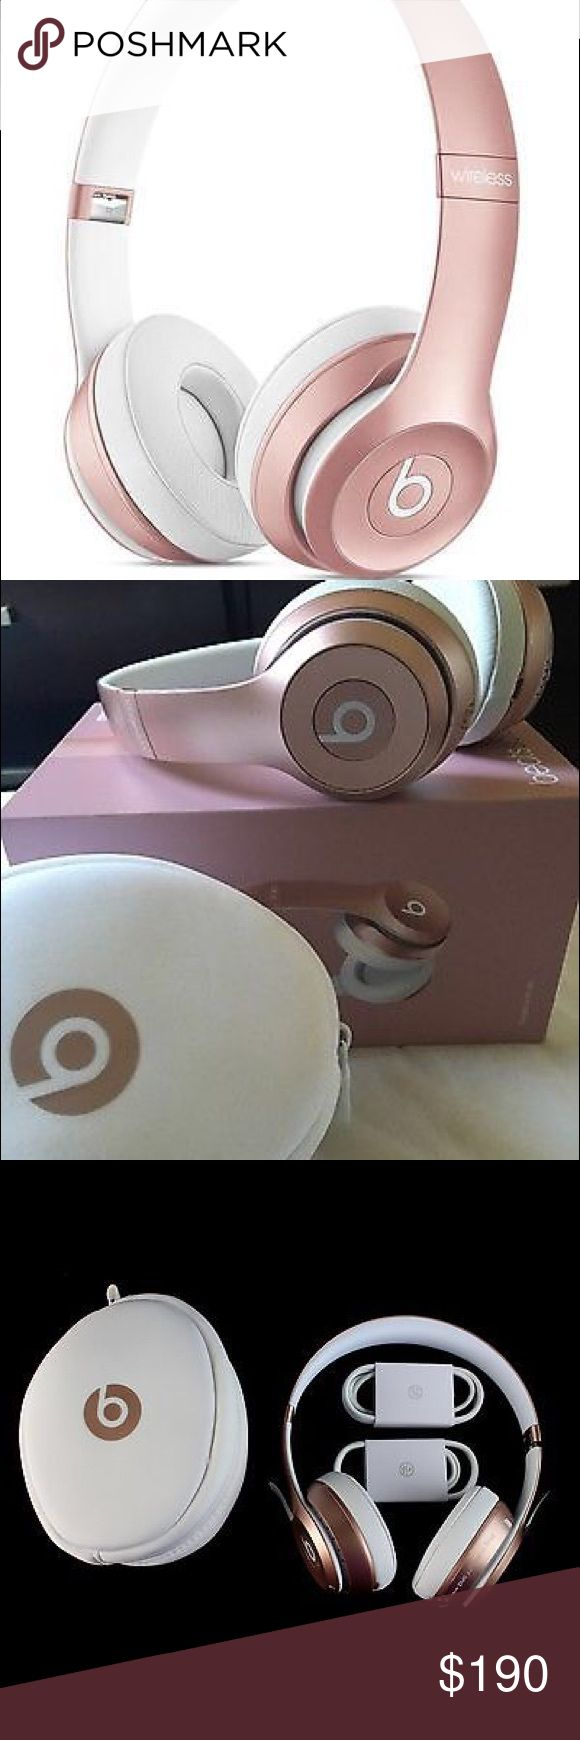 Beats solo wireless 2 Beats solo wireless 2, rose gold, brand new, in box, all accessories and head phones in perfect condition, retail price $299, my price 180, im selling them because I do not use them honestly, this price included shipping. Beats by dre, solo 2 wireless  Other